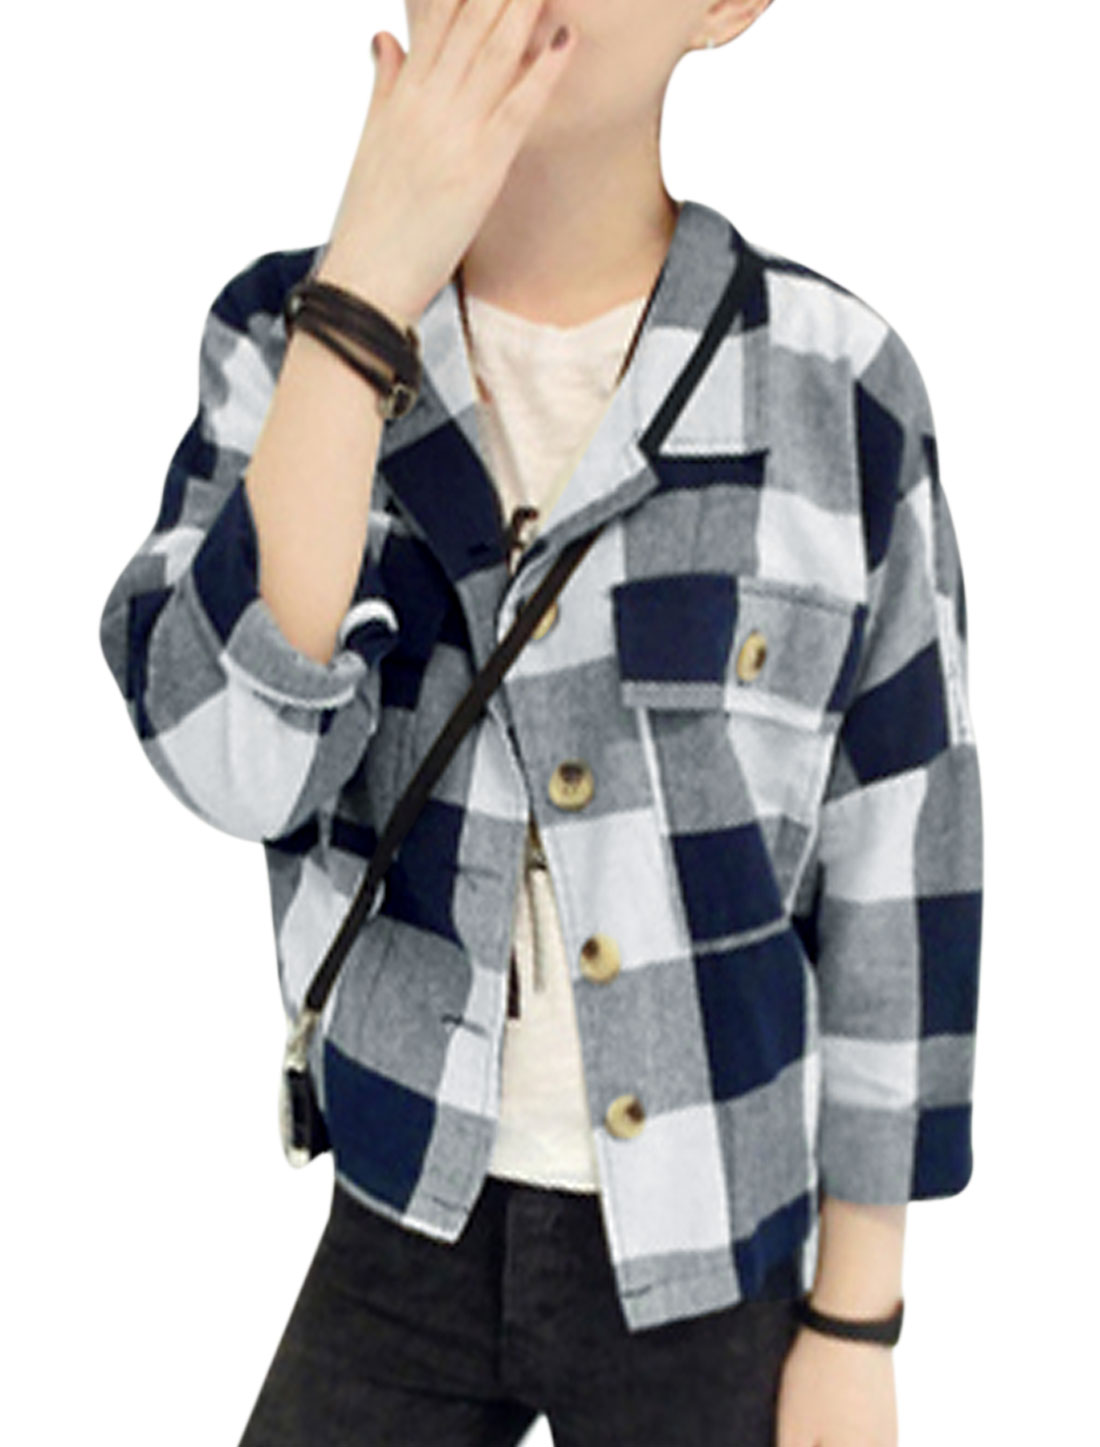 Lady Point Collar Check Pattern Single Breasted Casual Cropped Jacket Navy Blue White S